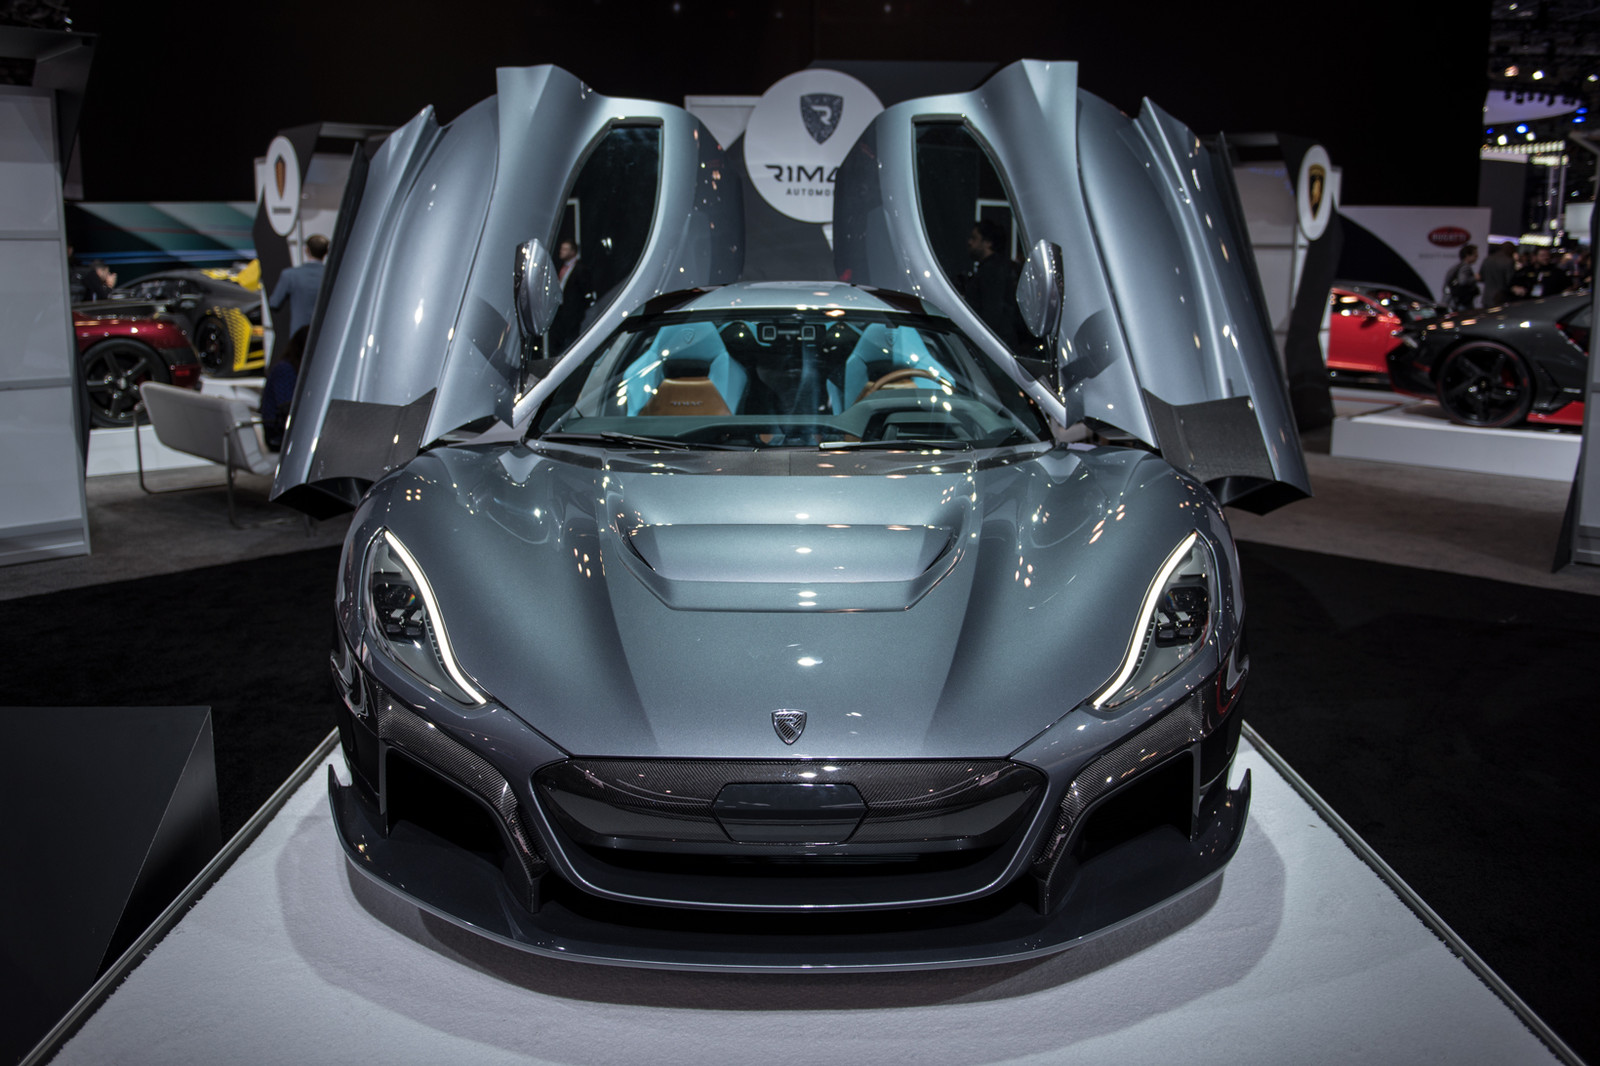 2018 New York International Auto Show Top 15 Hype Cars NYIAS Supercar Hypercar DSNY Formula Drift TRD Toyota Racing Development Fredic Aasbo Porsche 911 GT3 RS Mazda Kai Concept BMW M1 Procar Bugatti Chiron Sport Rimac C Two GMC Sierra Denali HD All Mountain Concept Koenigsegg Regera Lizard Green Kia Stinger GT Pimp My Ride West Coast Customs Mercedes AMG GT 63 S Mercedes Maybach S650 Cabriolet BMW i8 Roadster Corolla Hatchback Ultima EVO Coupe 1967 Bizzarrini P538 Race Car Super Car Hyper Car